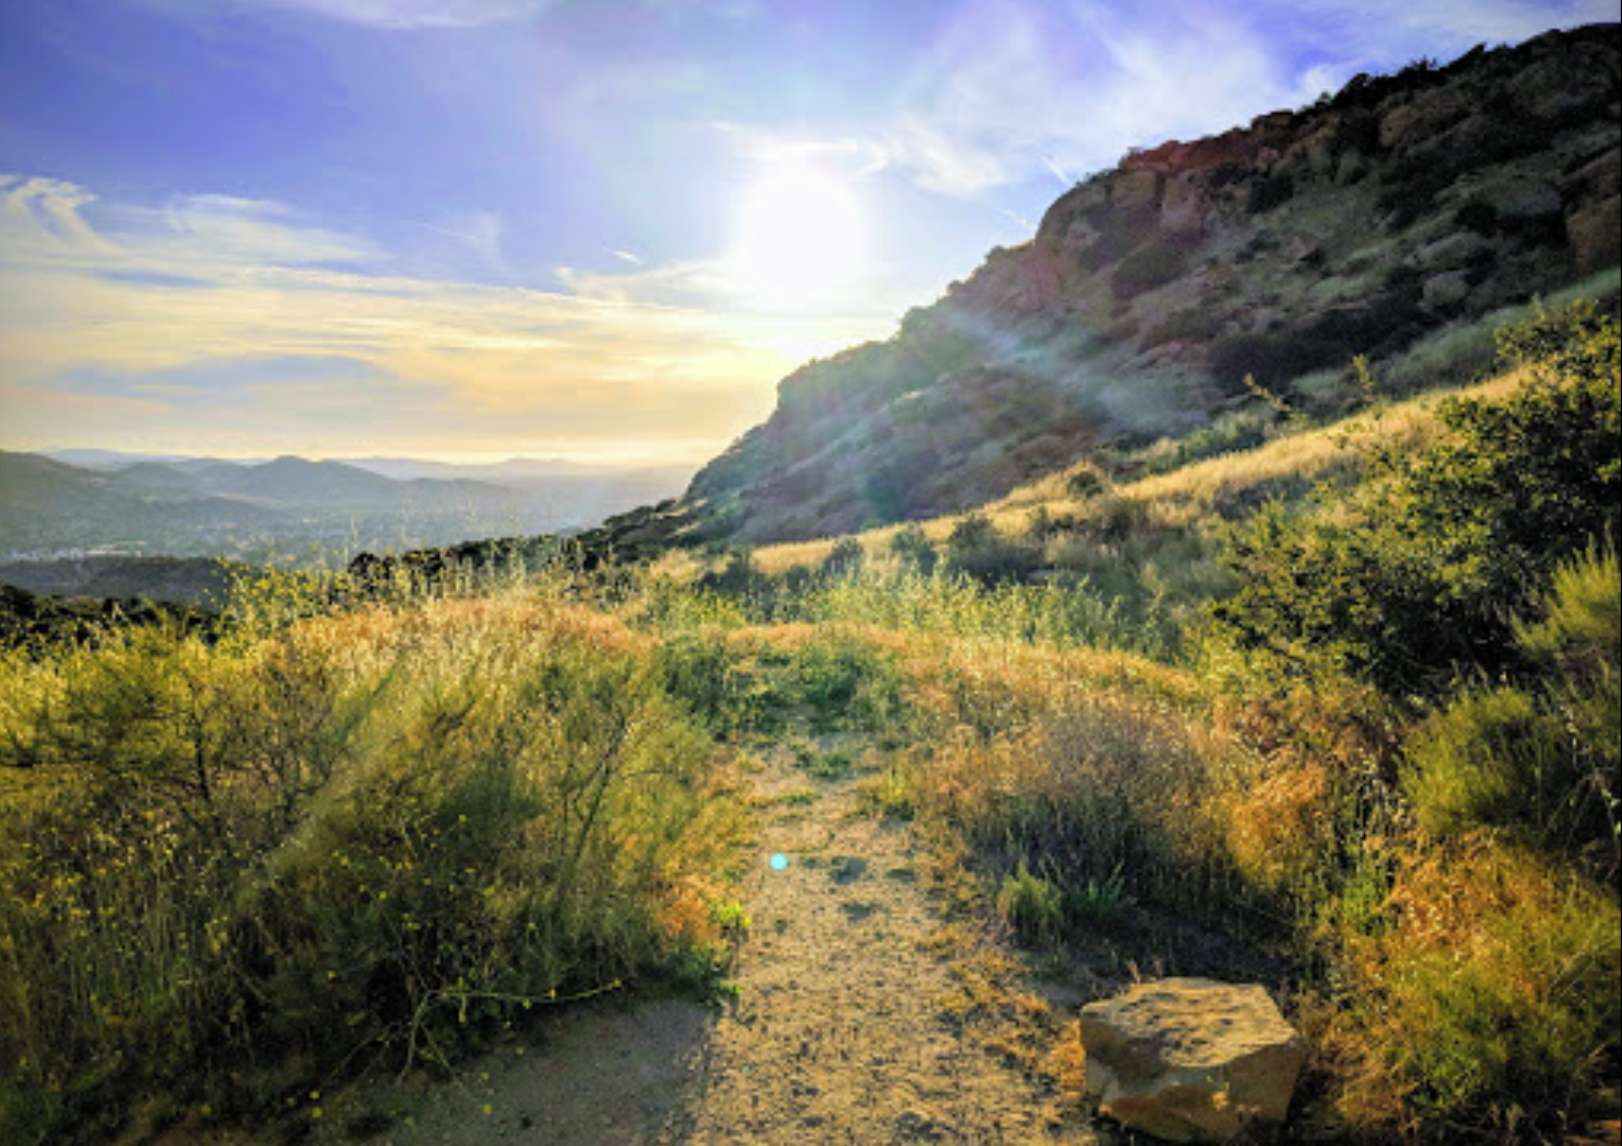 The Most Memorable Landscape In All Of Southern California Can Be Found Inside This Rugged Rock Park With Views Galore